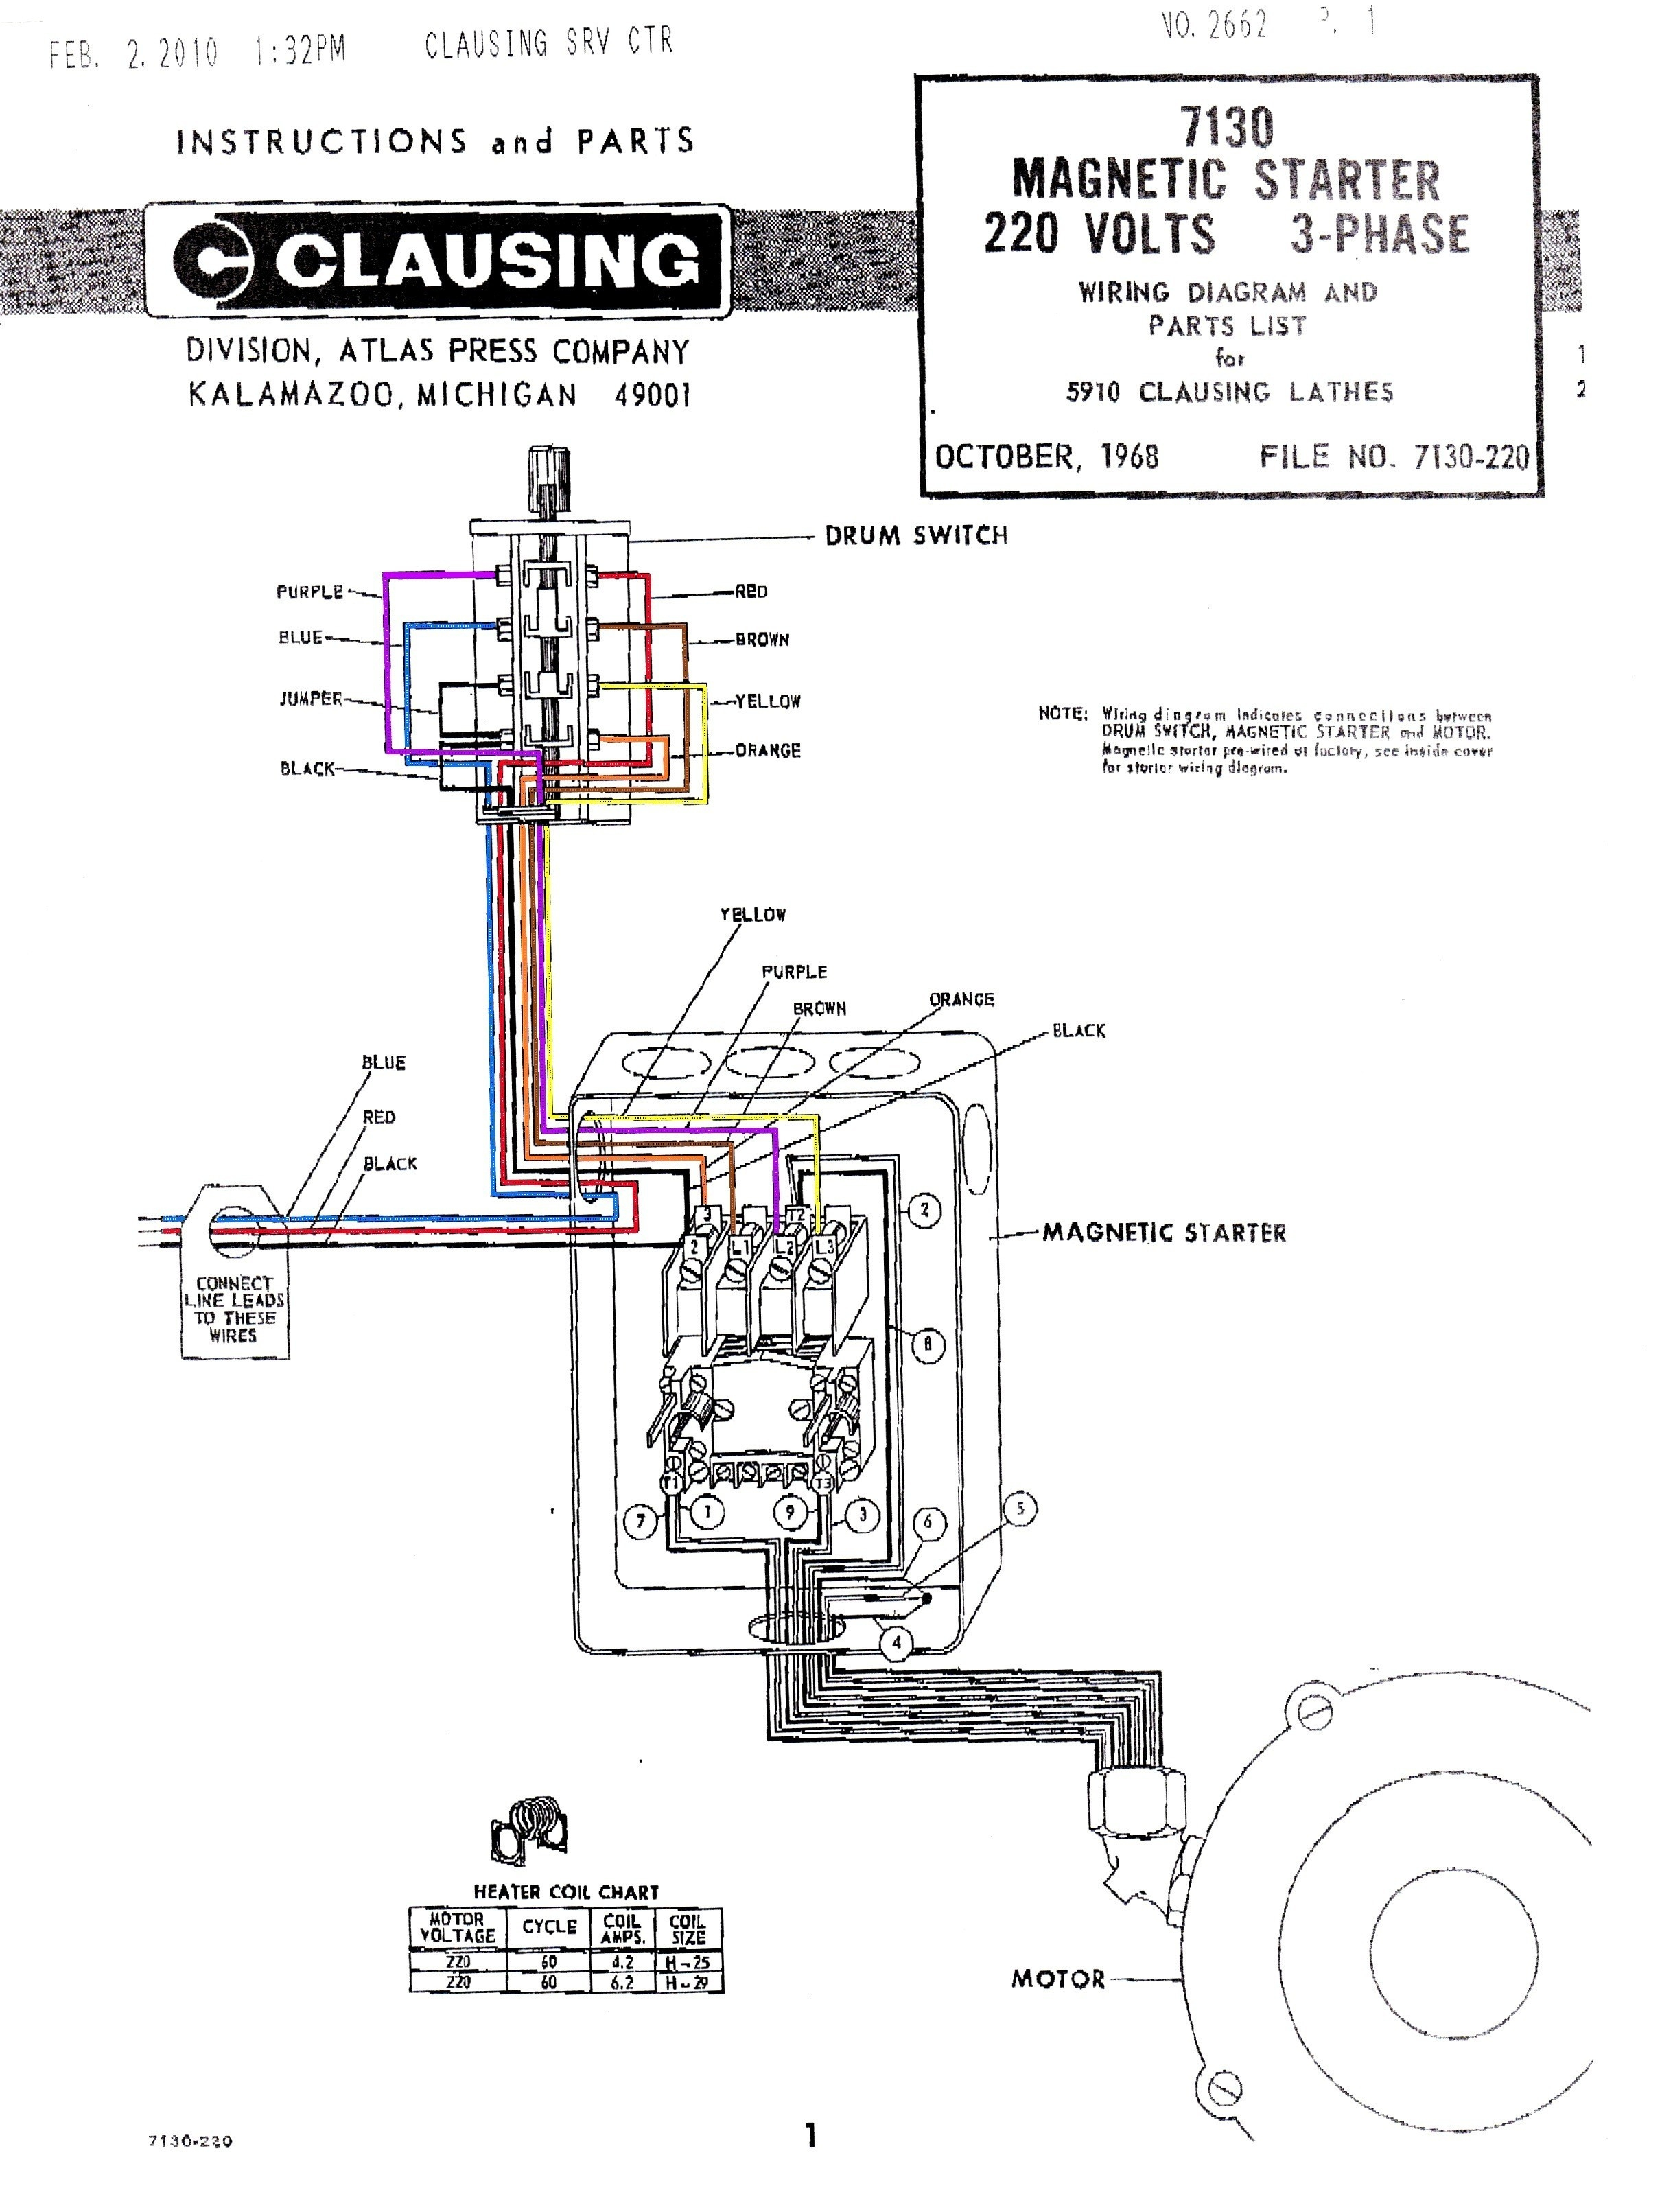 furnas motor starter wiring diagram Collection-Wiring Diagram for Furnas Motor Starters New Ite Motor Starter Wiring Diagram Wire Center • 1-t